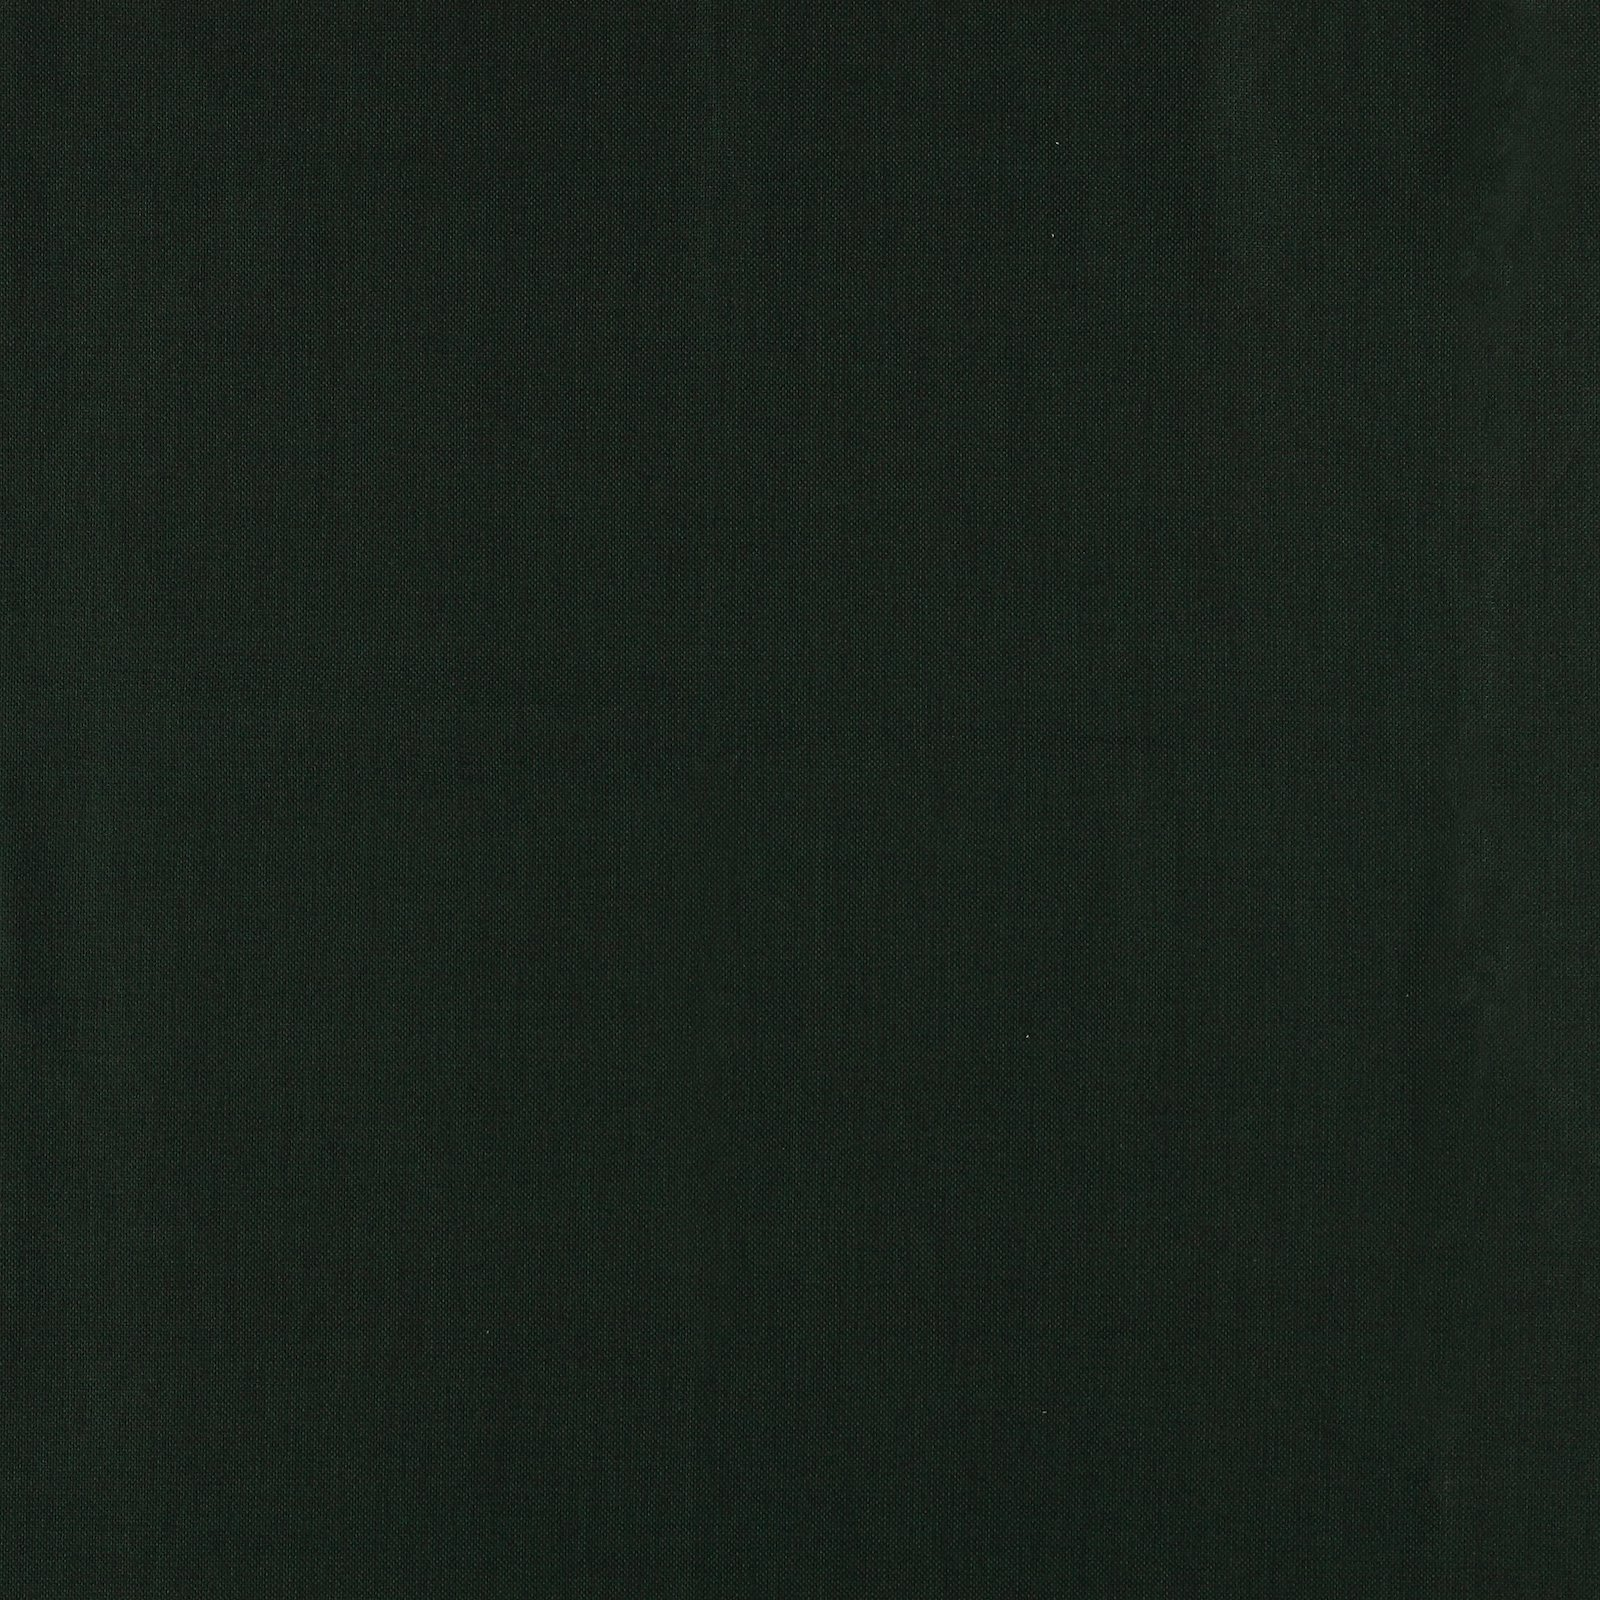 Upholstery fabric emerald green 823696_pack_sp